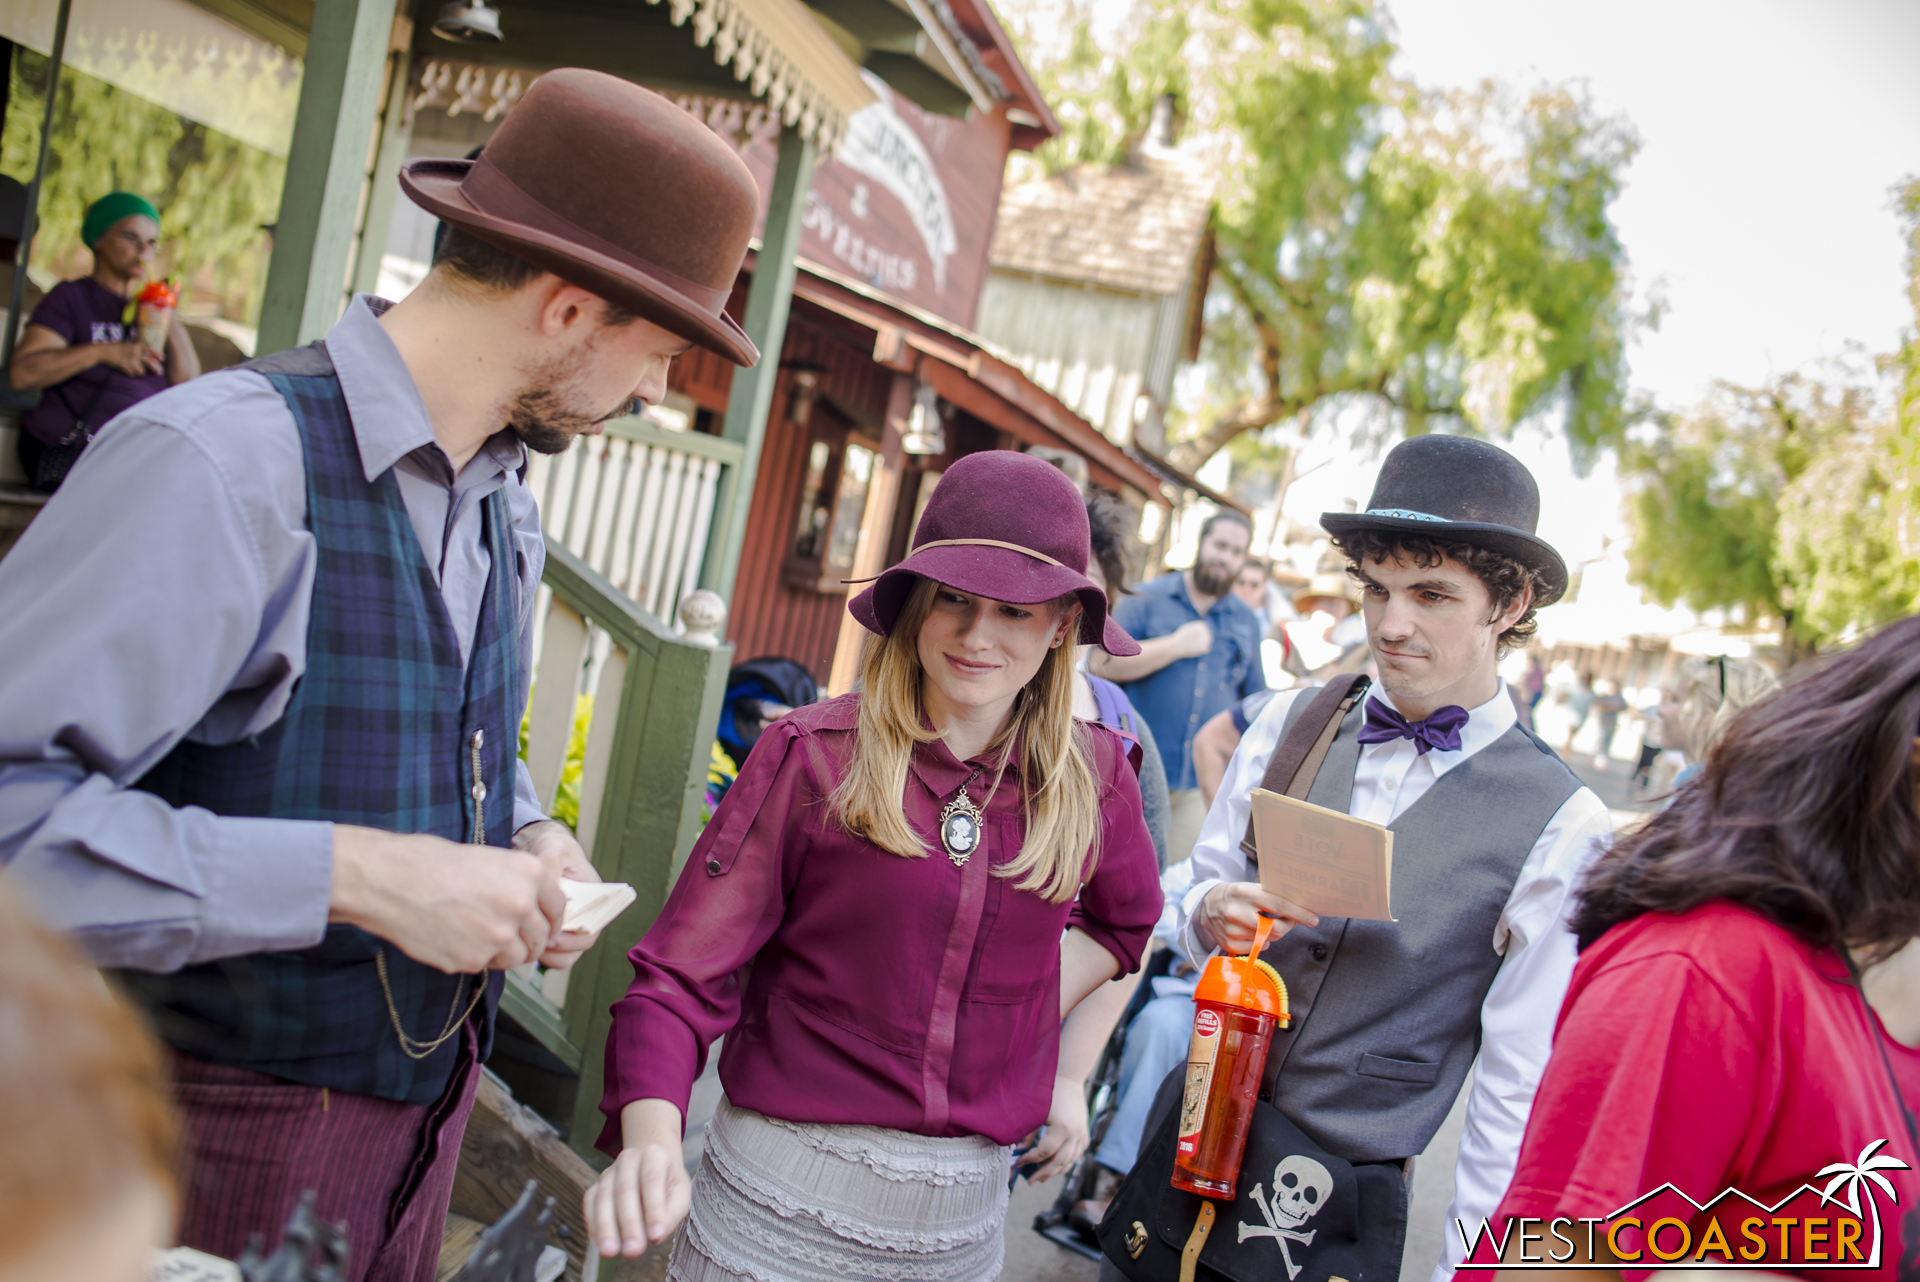 Town clerk Kenny Storm looks on as more guests cast their vote.  Ghost Town Alive! has been such a hit that many season passholders return to take part in the story repeatedly, and some even dress up to enhance the role playing.